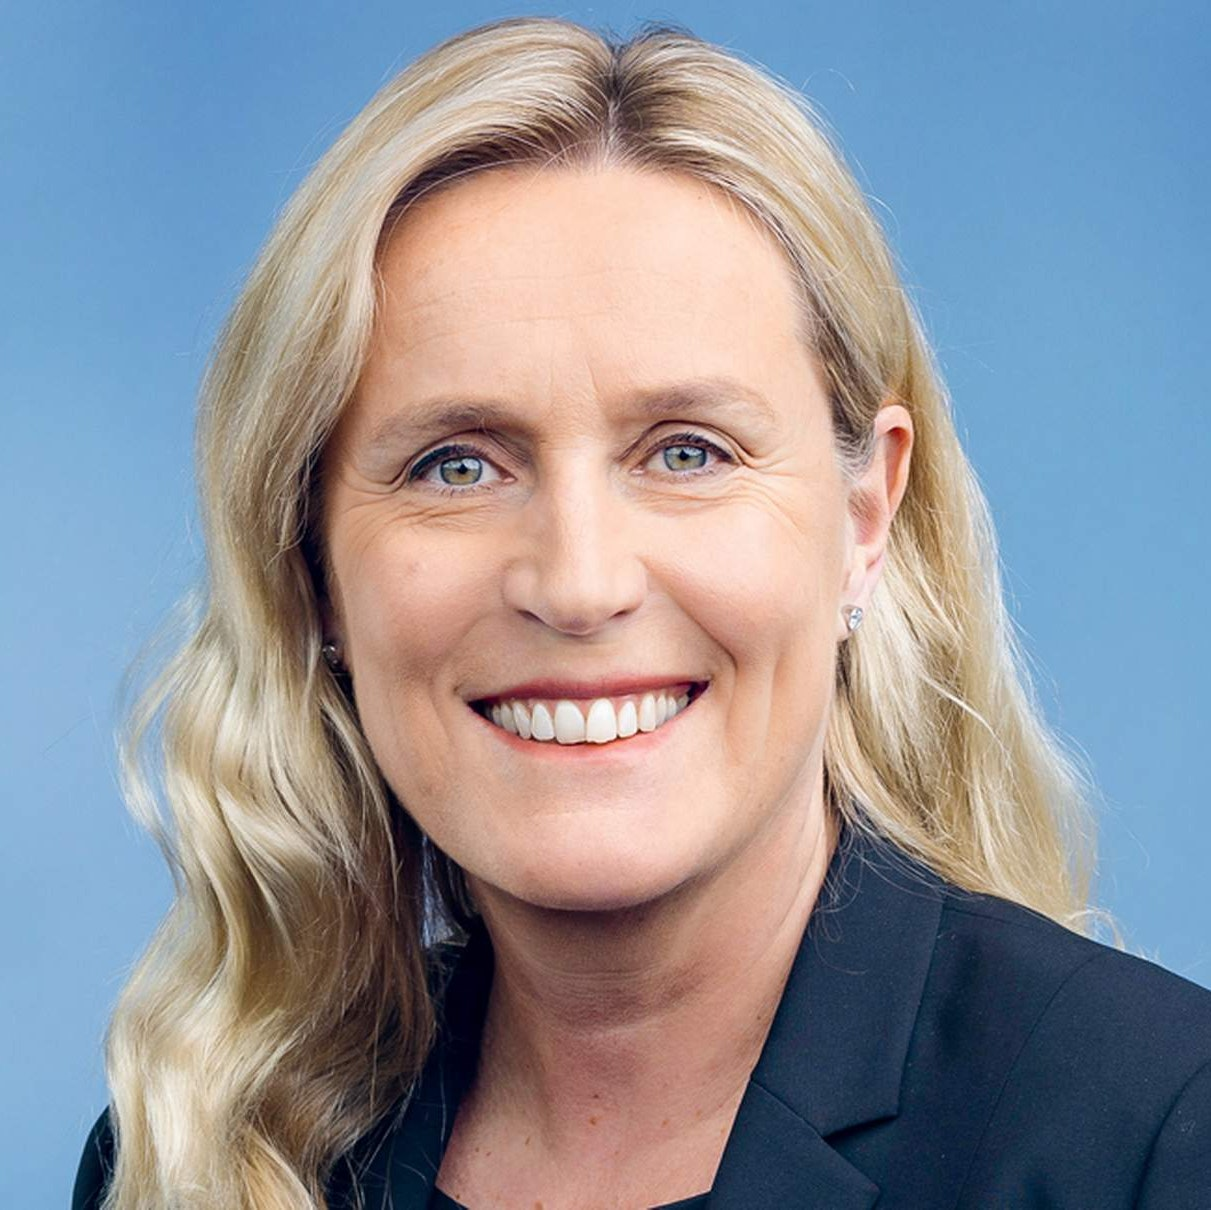 Headshot of Iris Bohnet